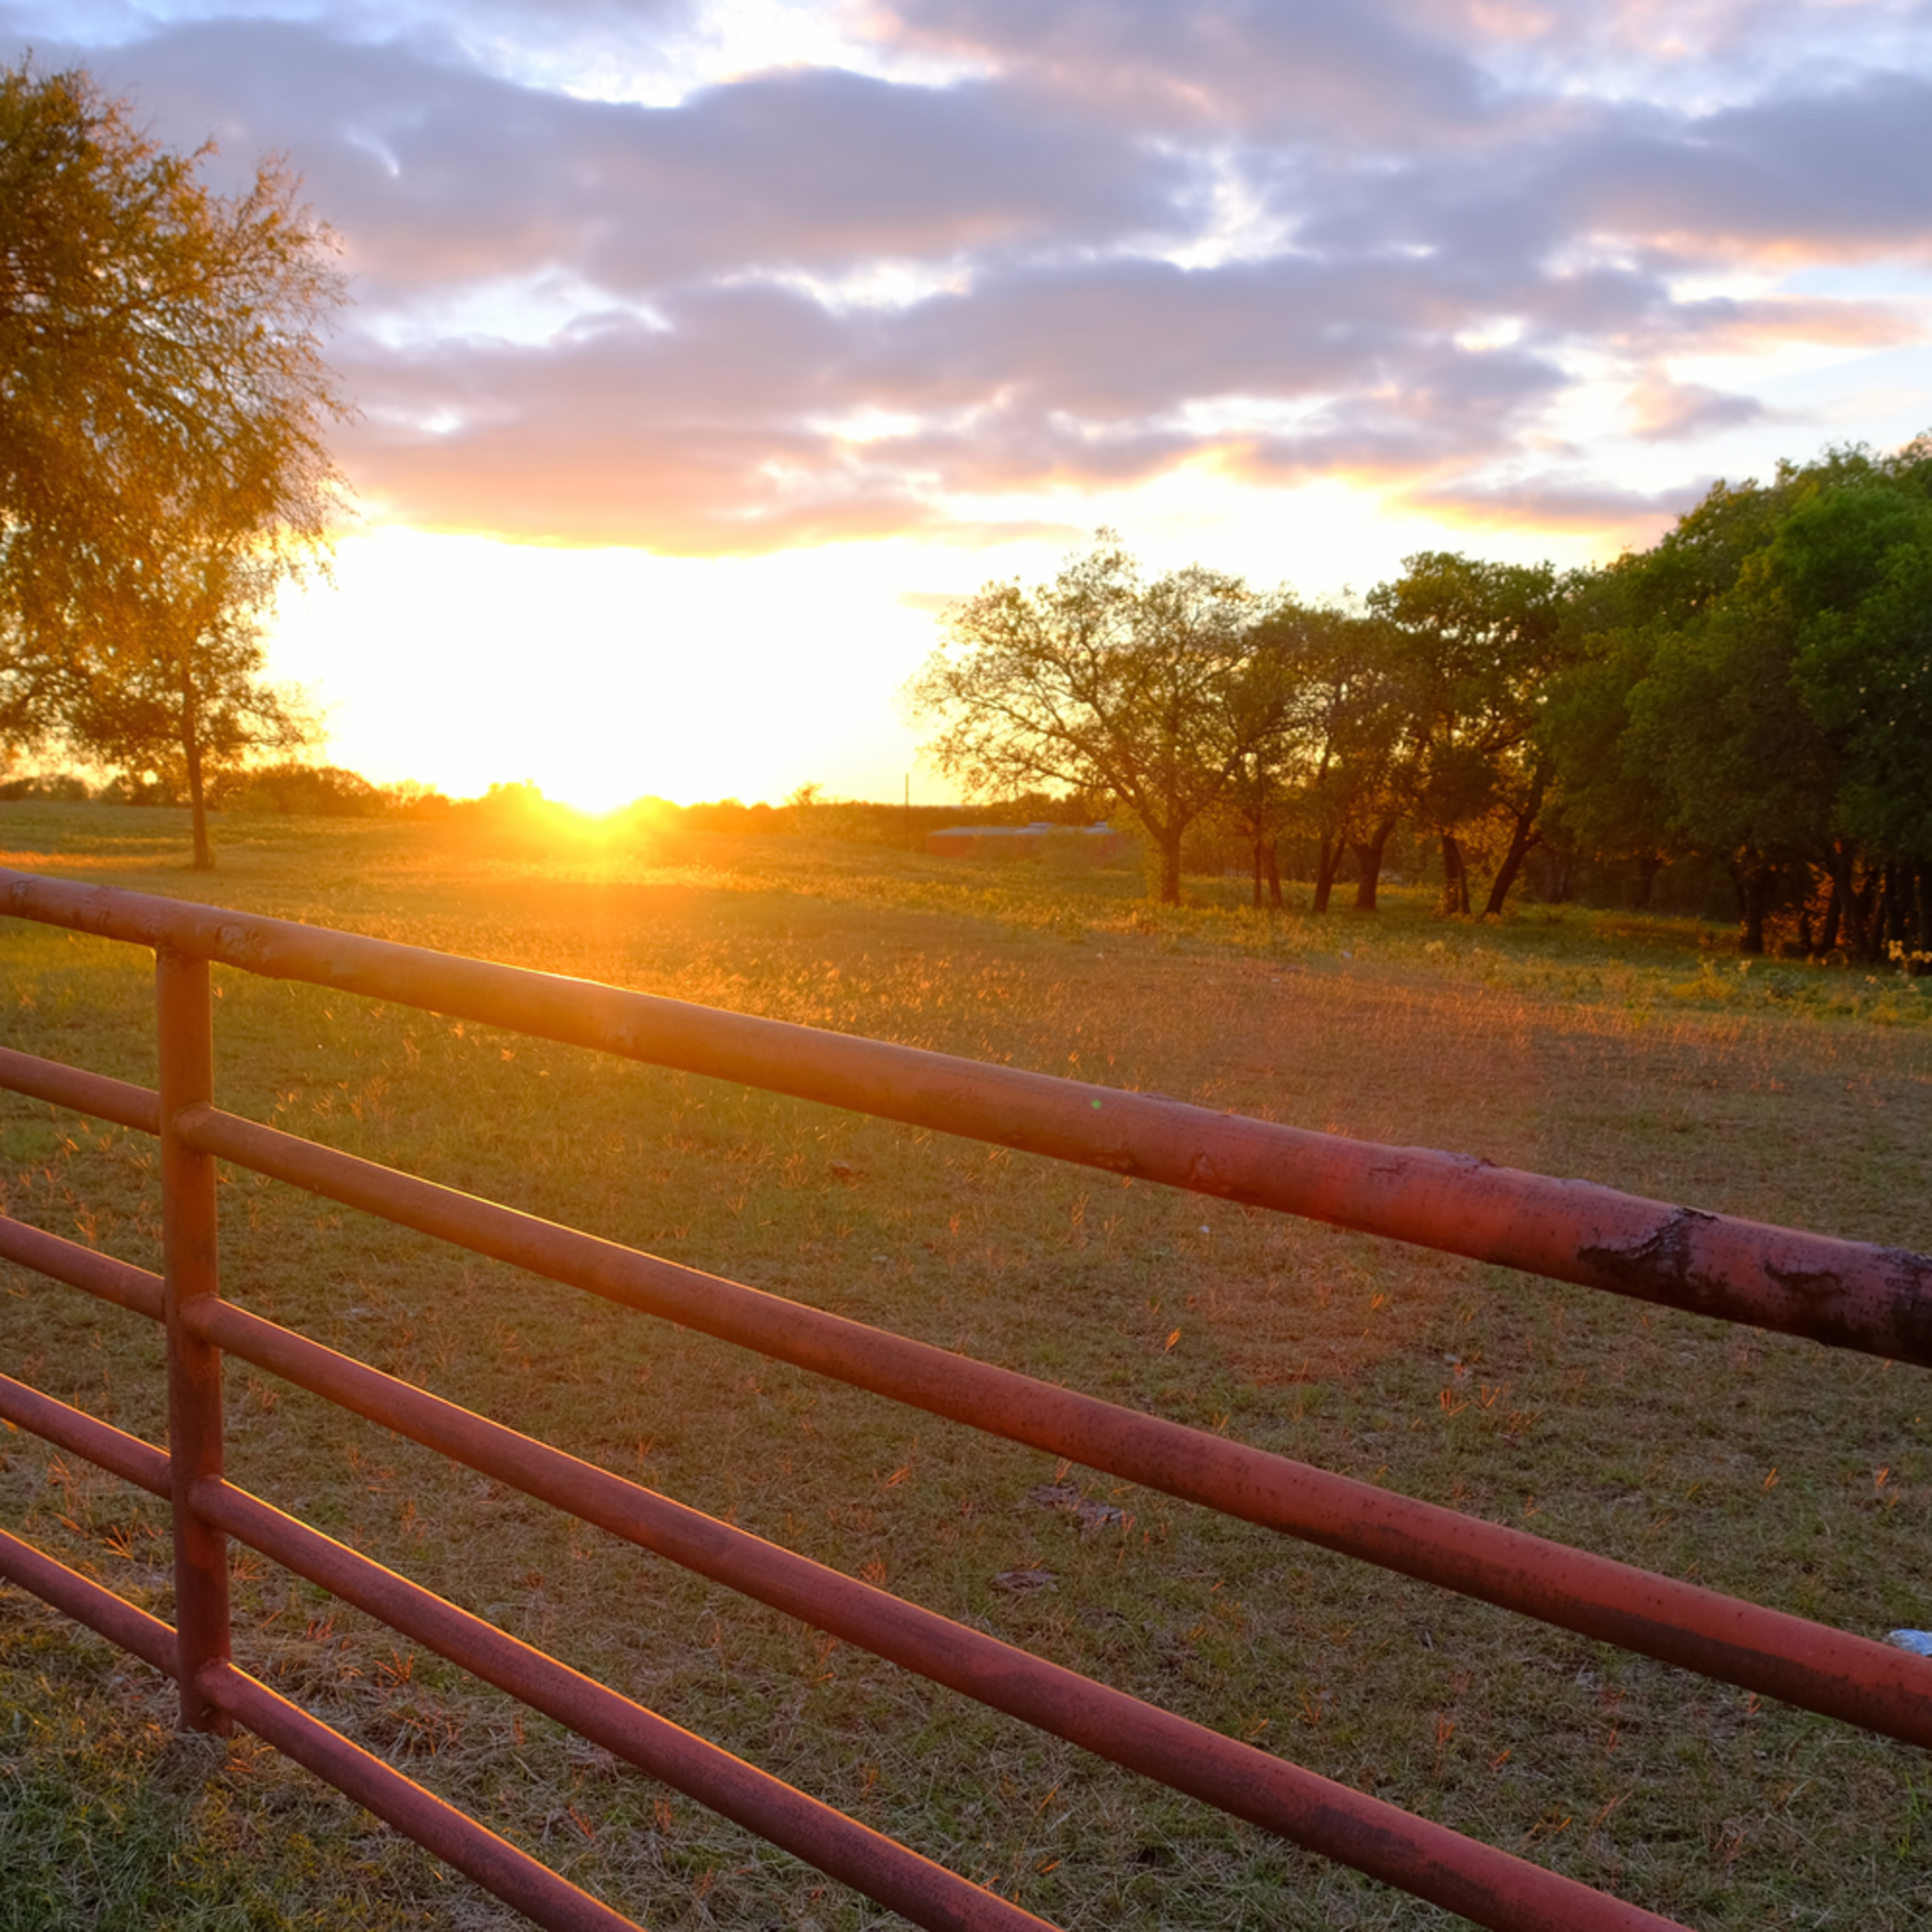 Sunset over texas 36 zefu1b